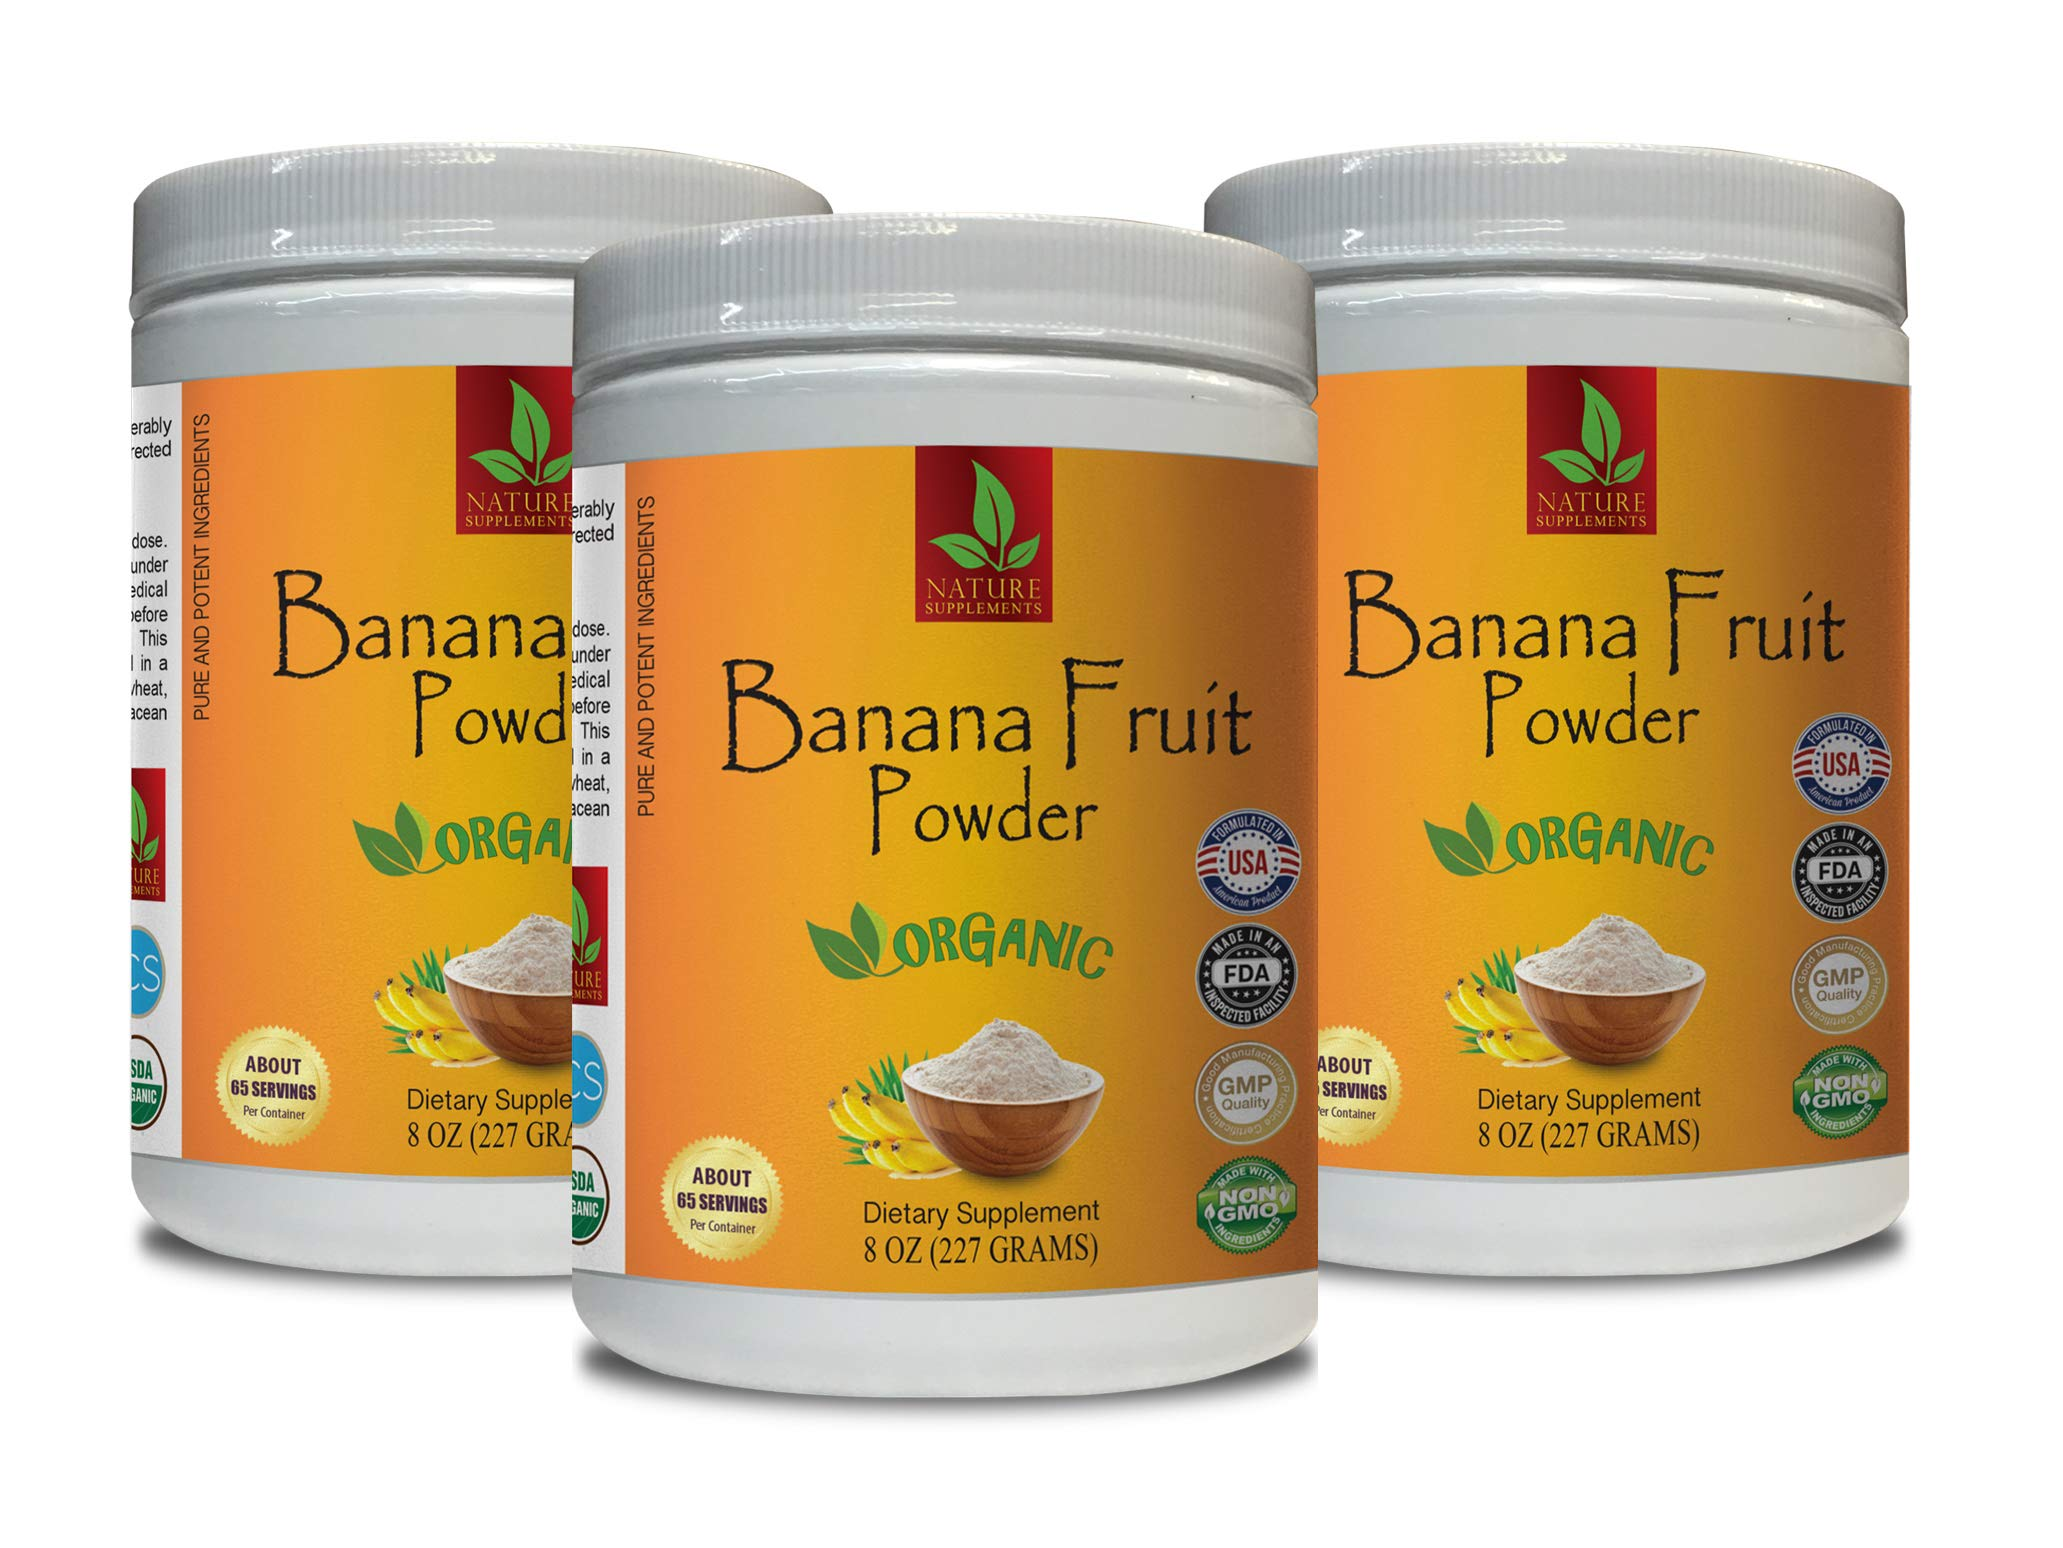 Energy boosters and Weight Loss Supplements - Banana Fruit Organic Powder - Pure and Potent Ingredients - Digestion Plus - 3 Cans 24 OZ (195 Servings)